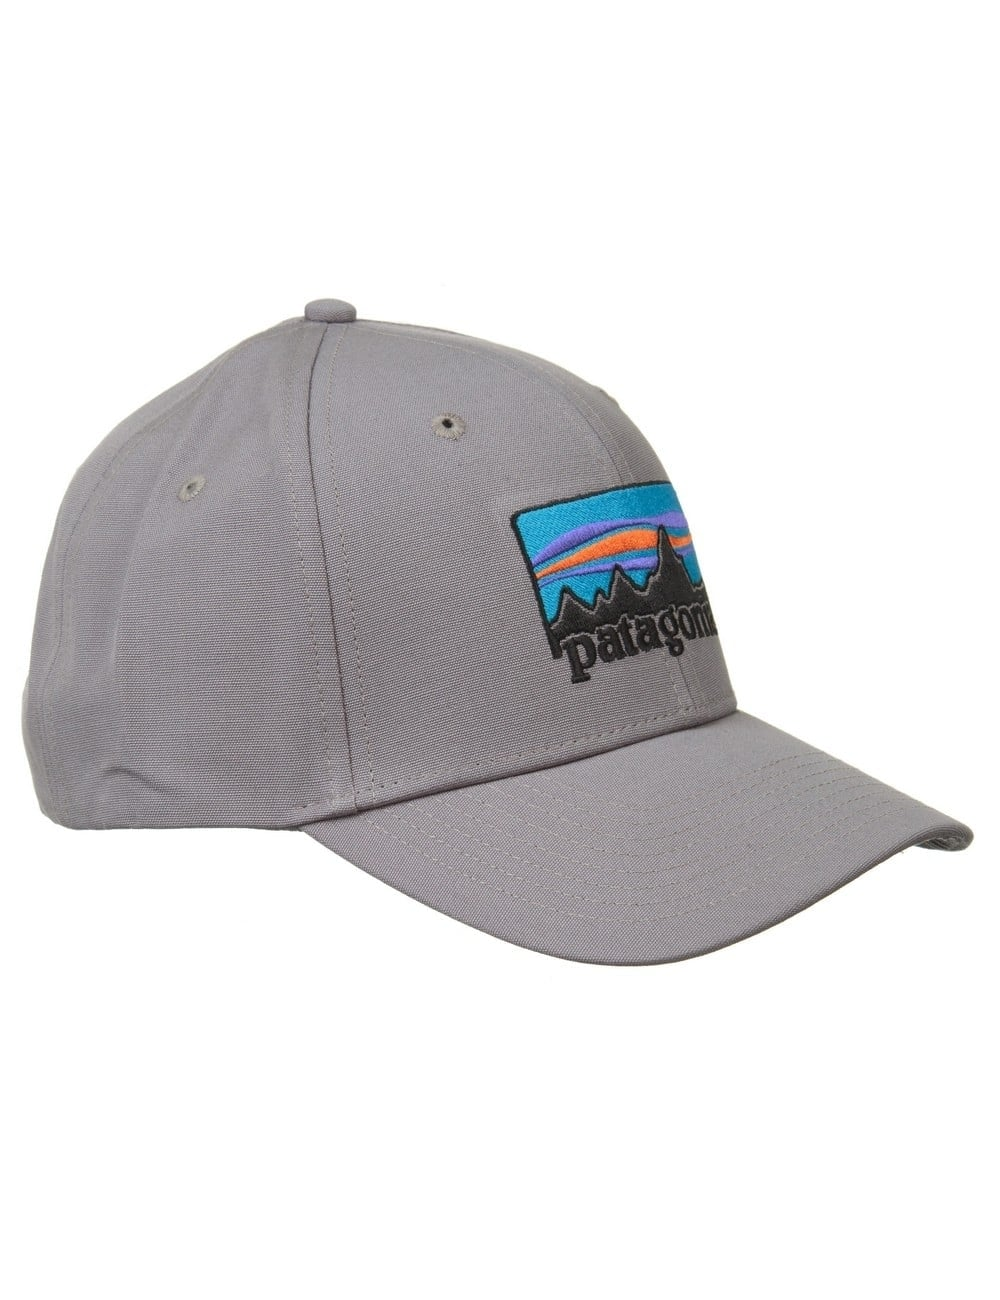 Patagonia 73 Logo Roger That Hat - Feather Grey - Accessories from ... c1c7108e116